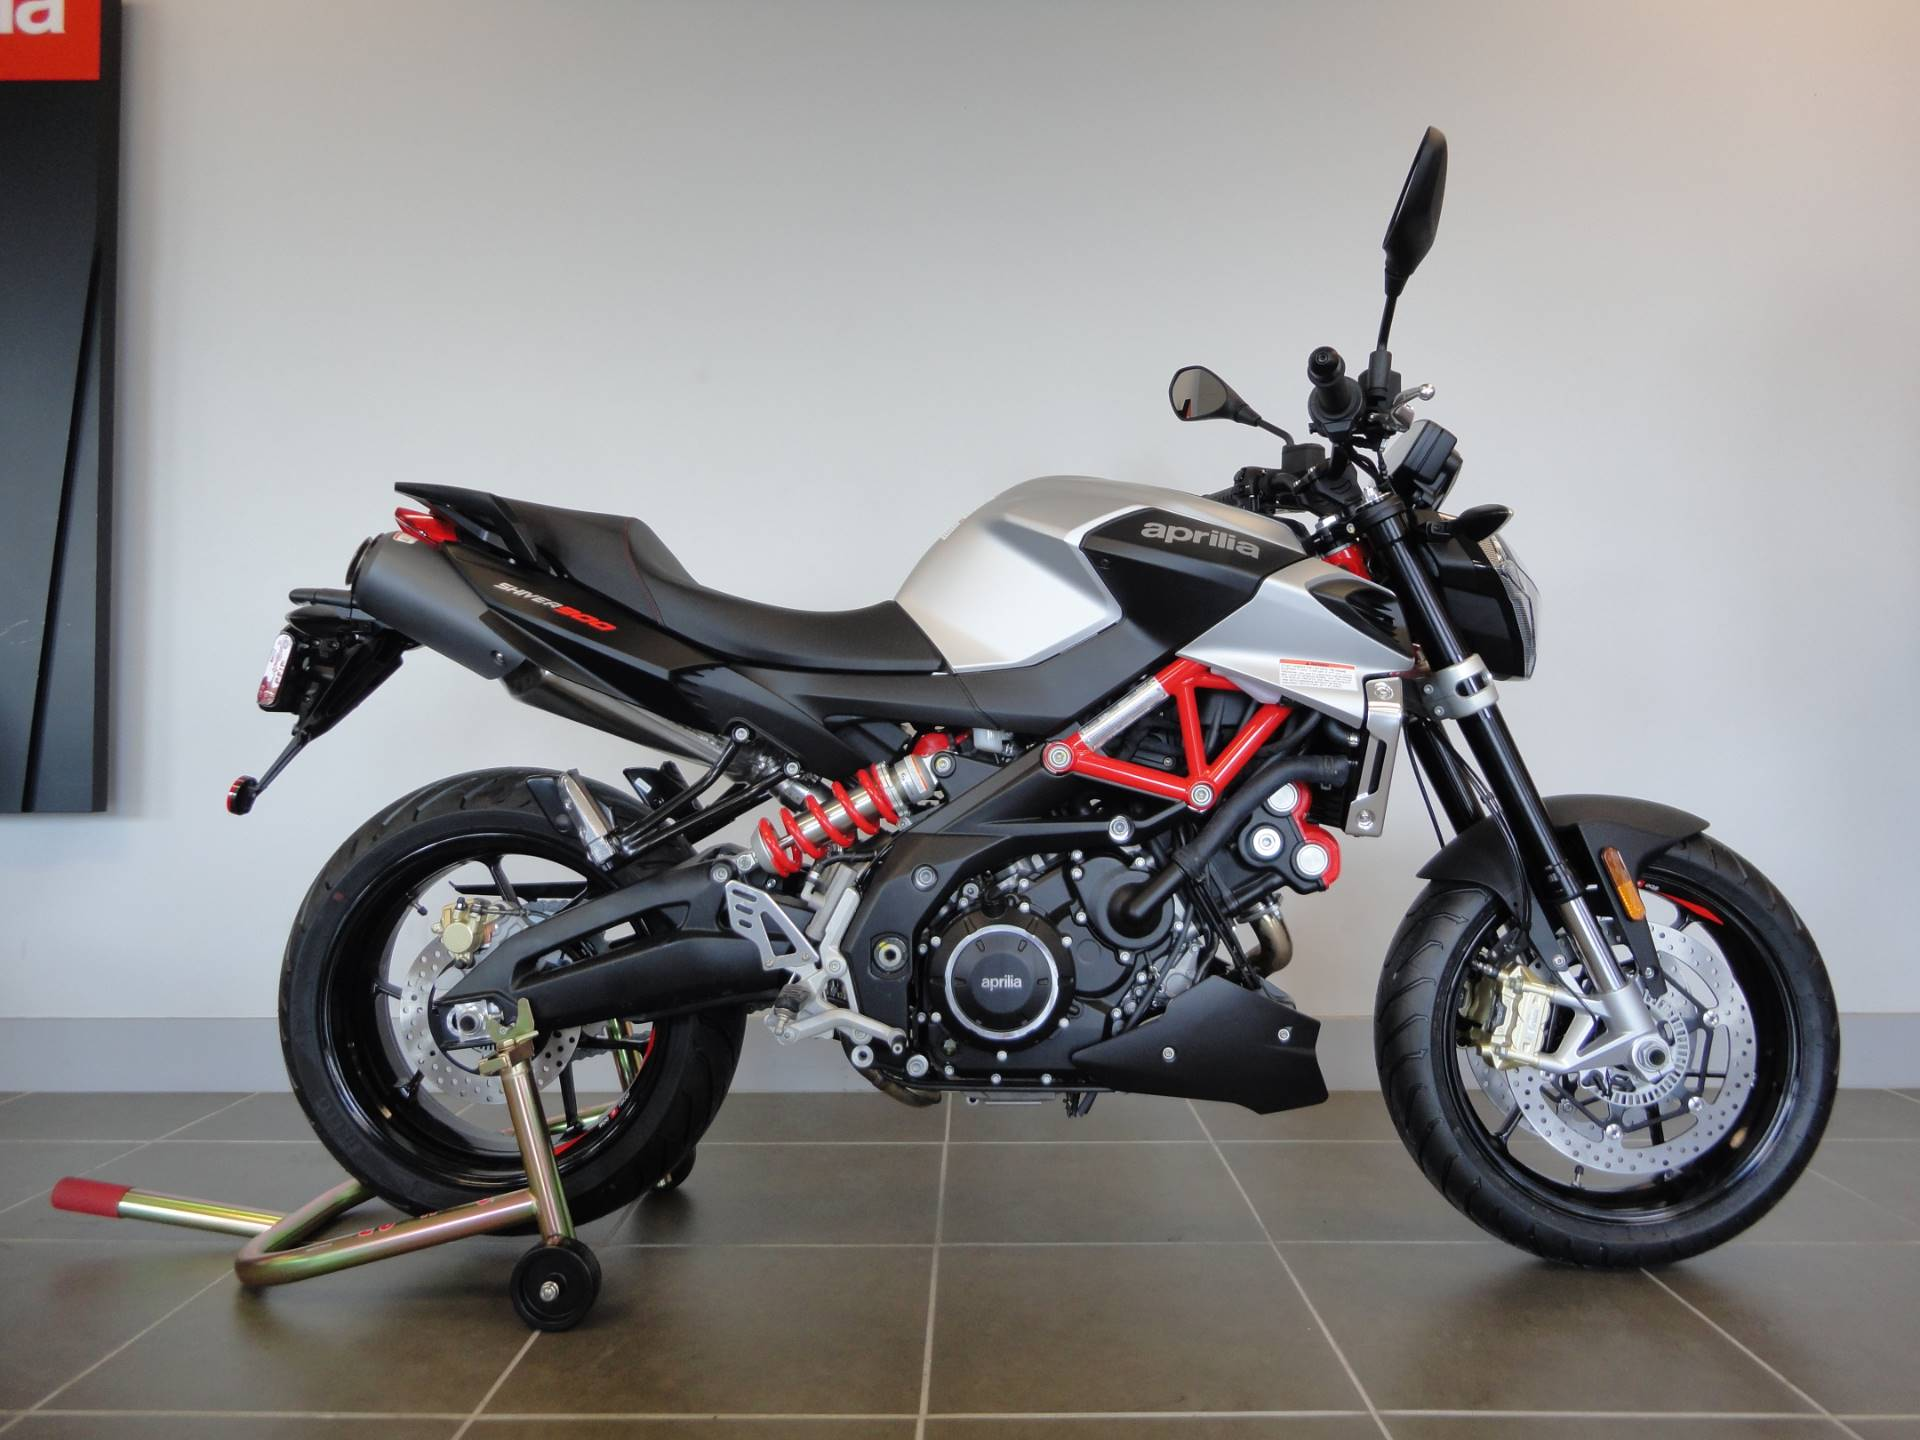 New 2018 Aprilia Shiver 900 Motorcycles in Houston, TX | Stock ...